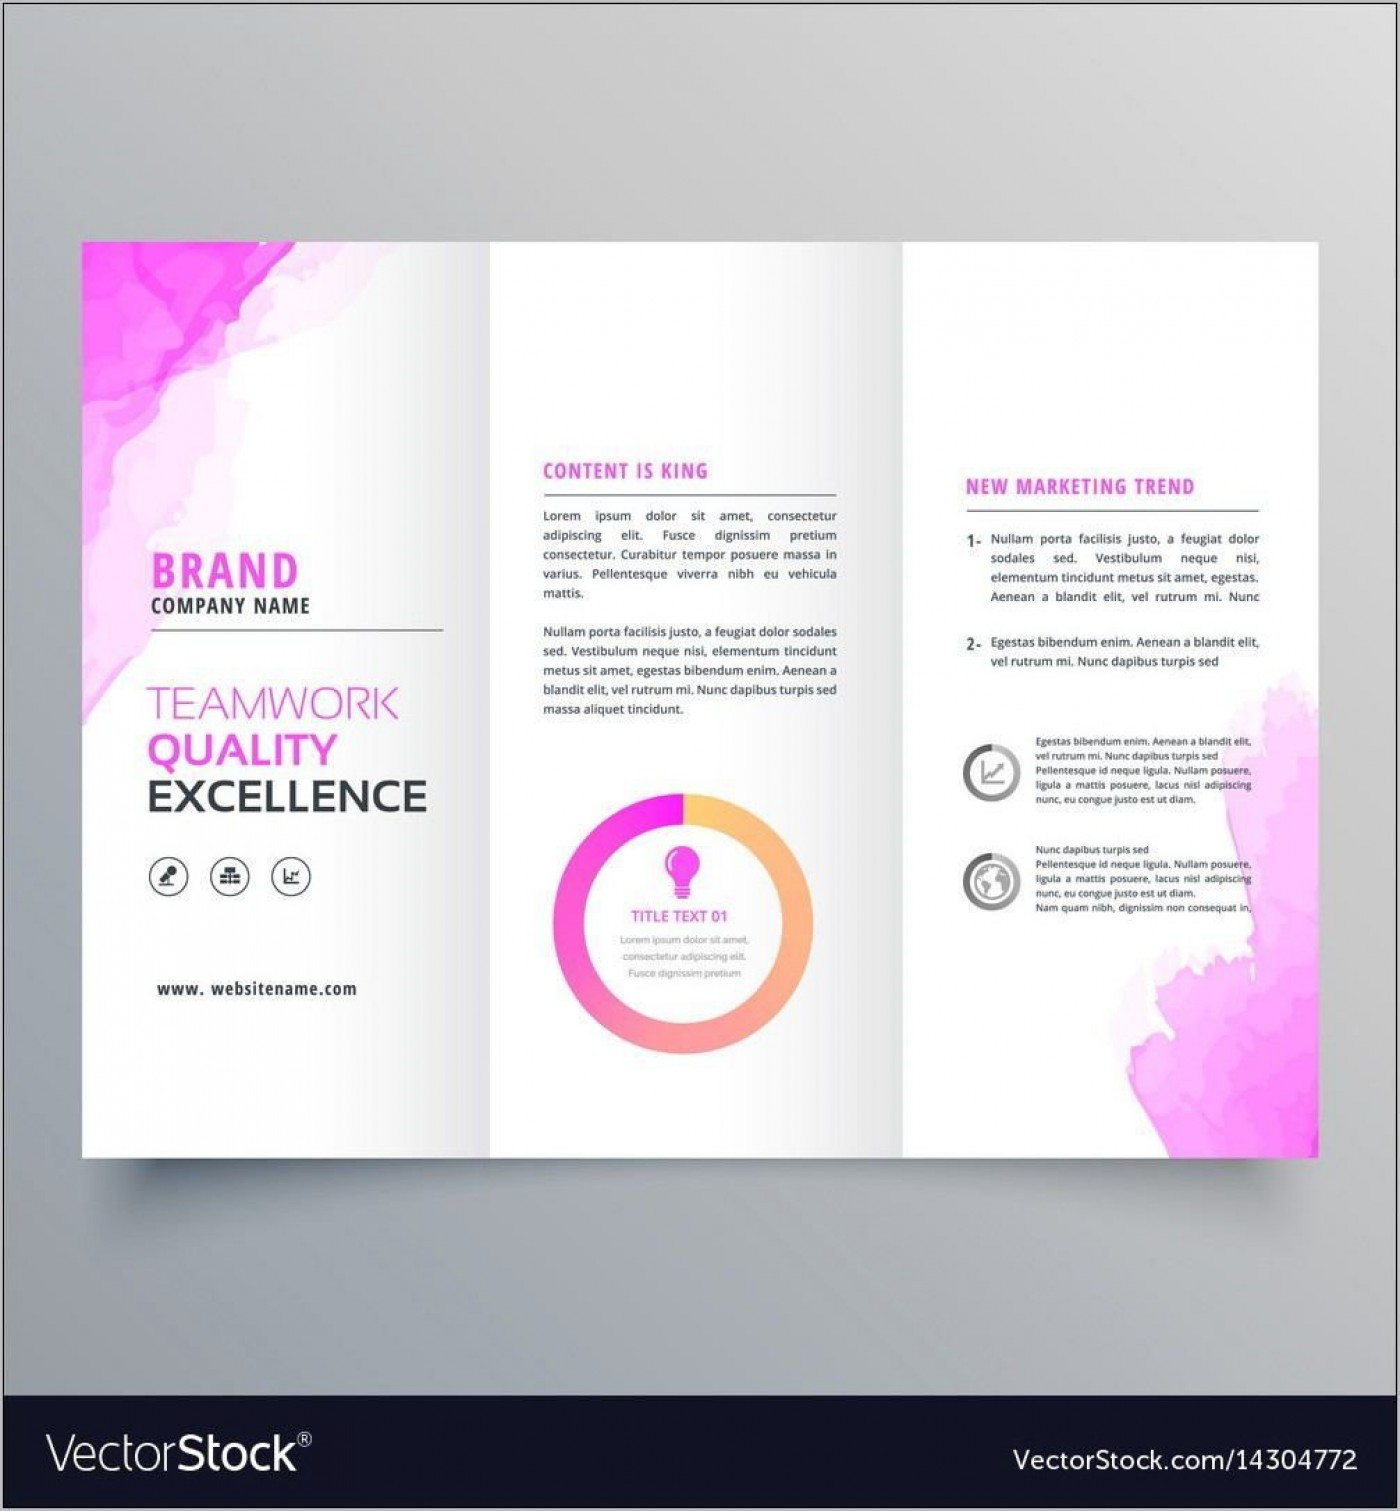 000 Striking Download Brochure Template For Word 2007 Photo 1400